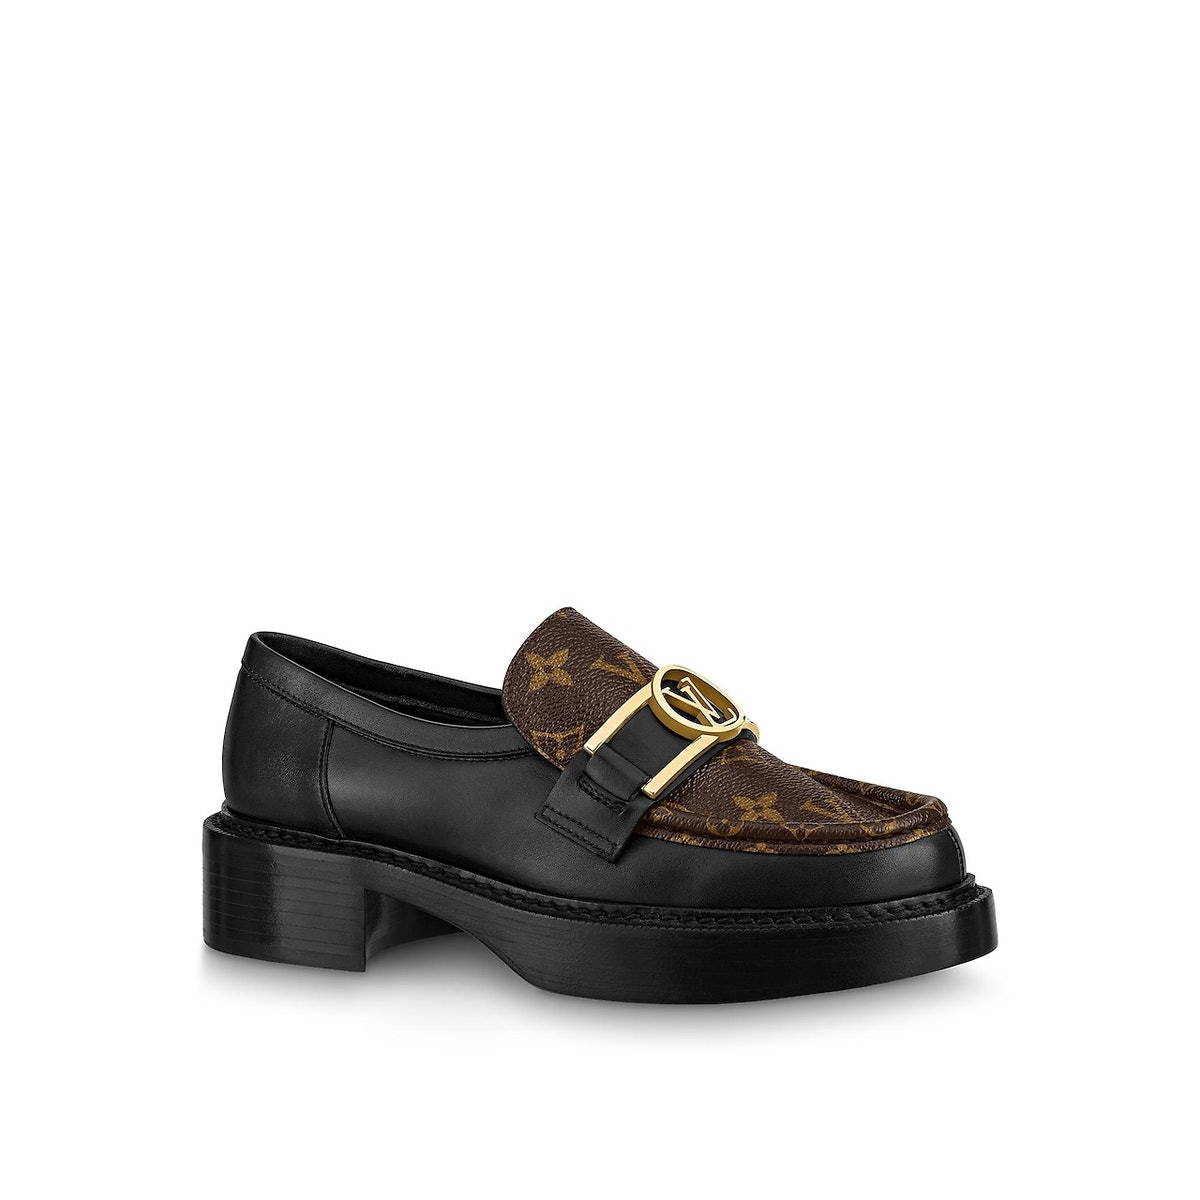 Academy Loafer